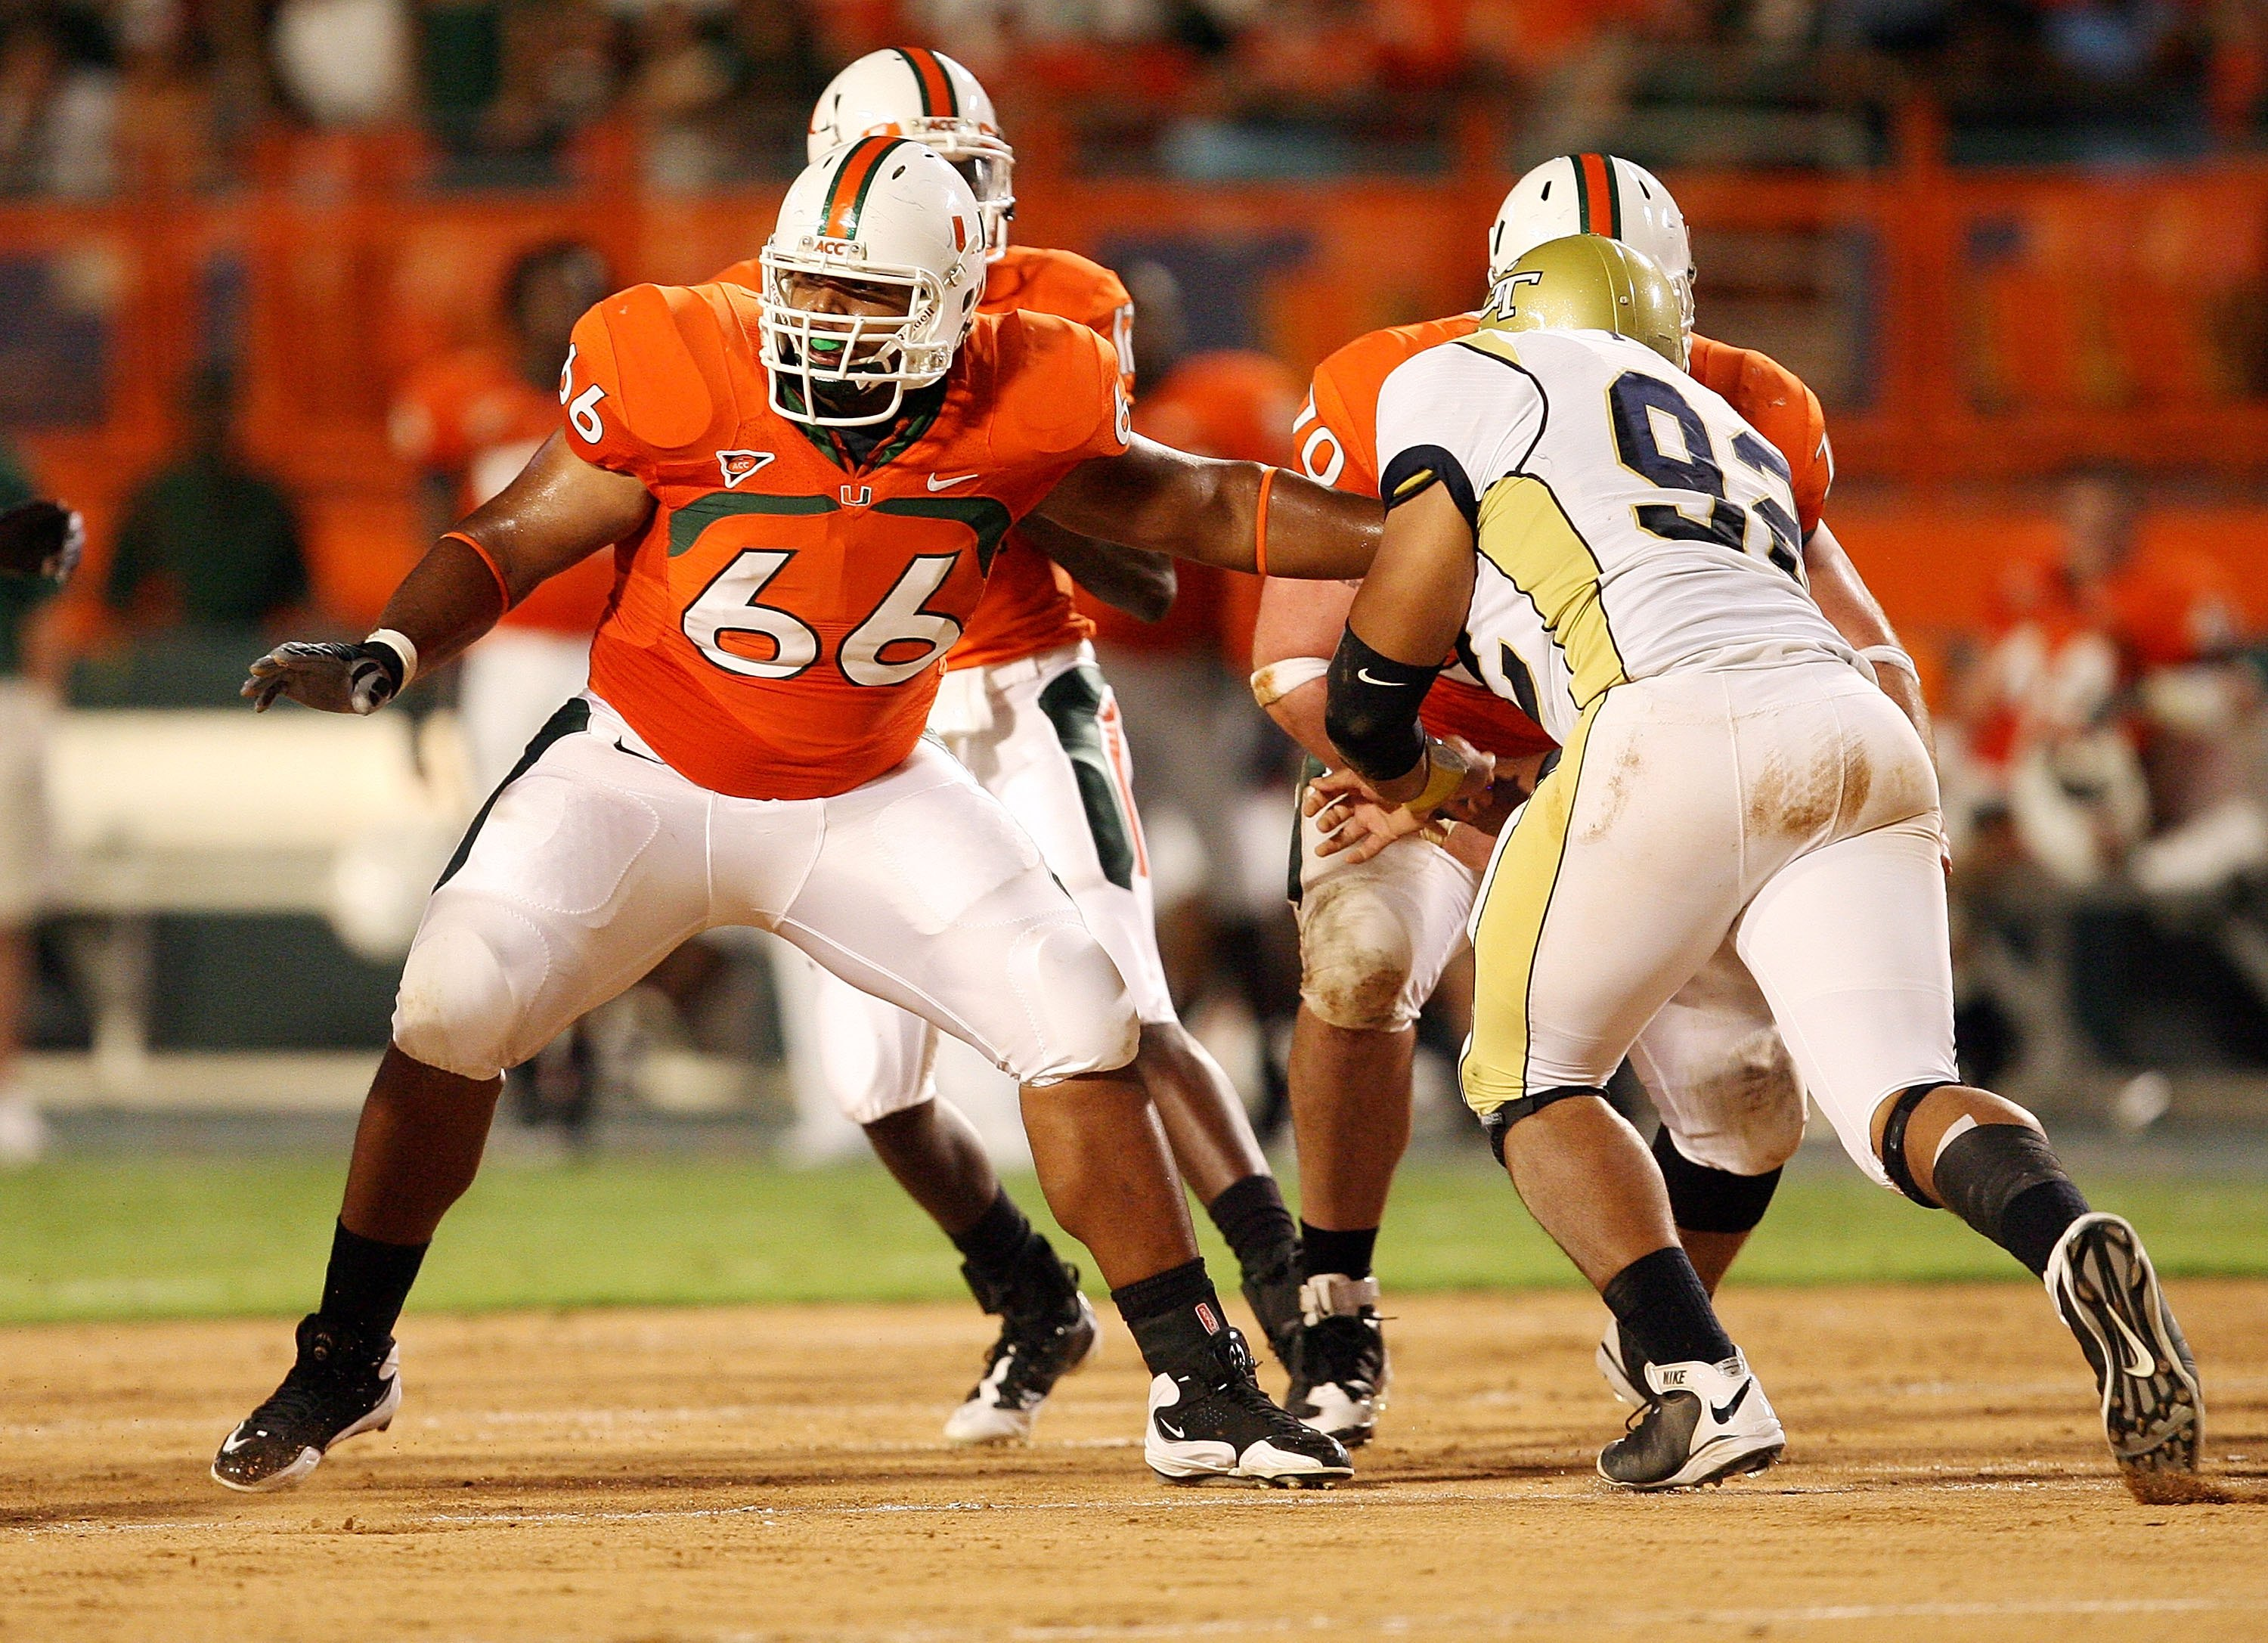 MIAMI GARDENS, FL - SEPTEMBER 17:  Offensive lineman Harland Gunn #66 of the Miami Hurricanes drops back to pass block while taking on the Georgia Tech Yellow Jackets at Land Shark Stadium on September 17, 2009 in Miami Gardens, Florida. Miami defeated Ge